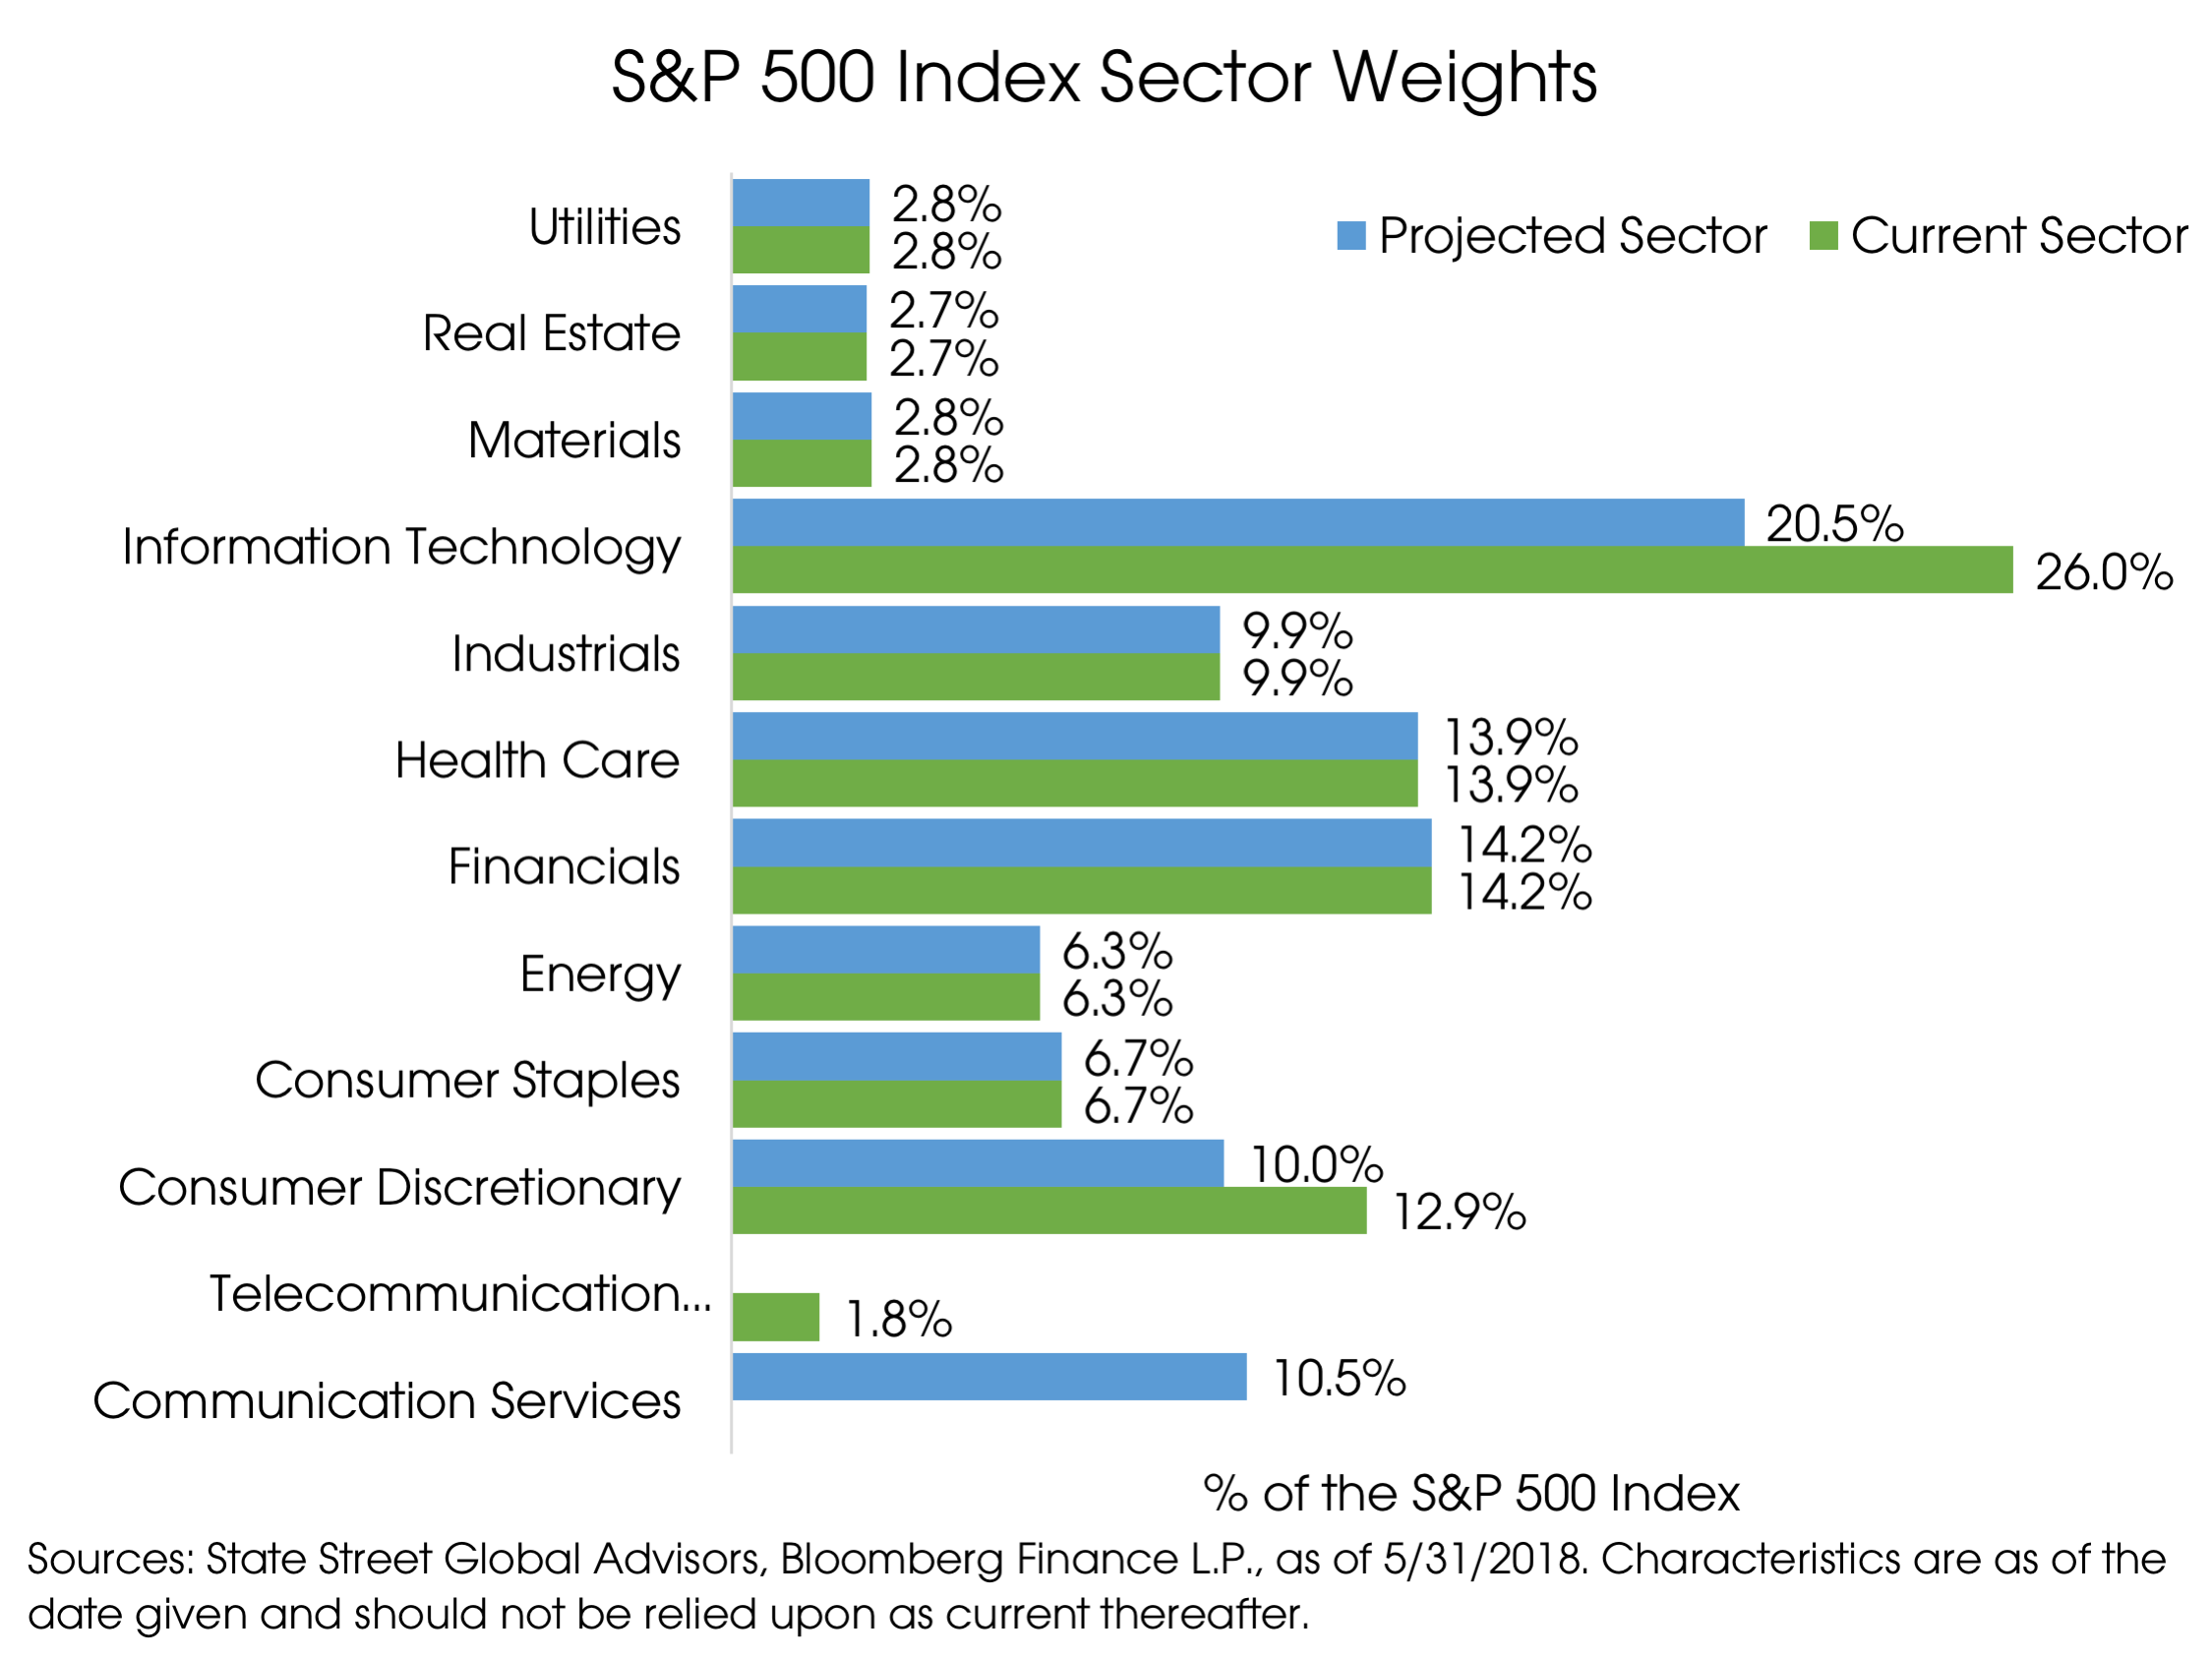 09102018_SP Index Sector Weightings.png